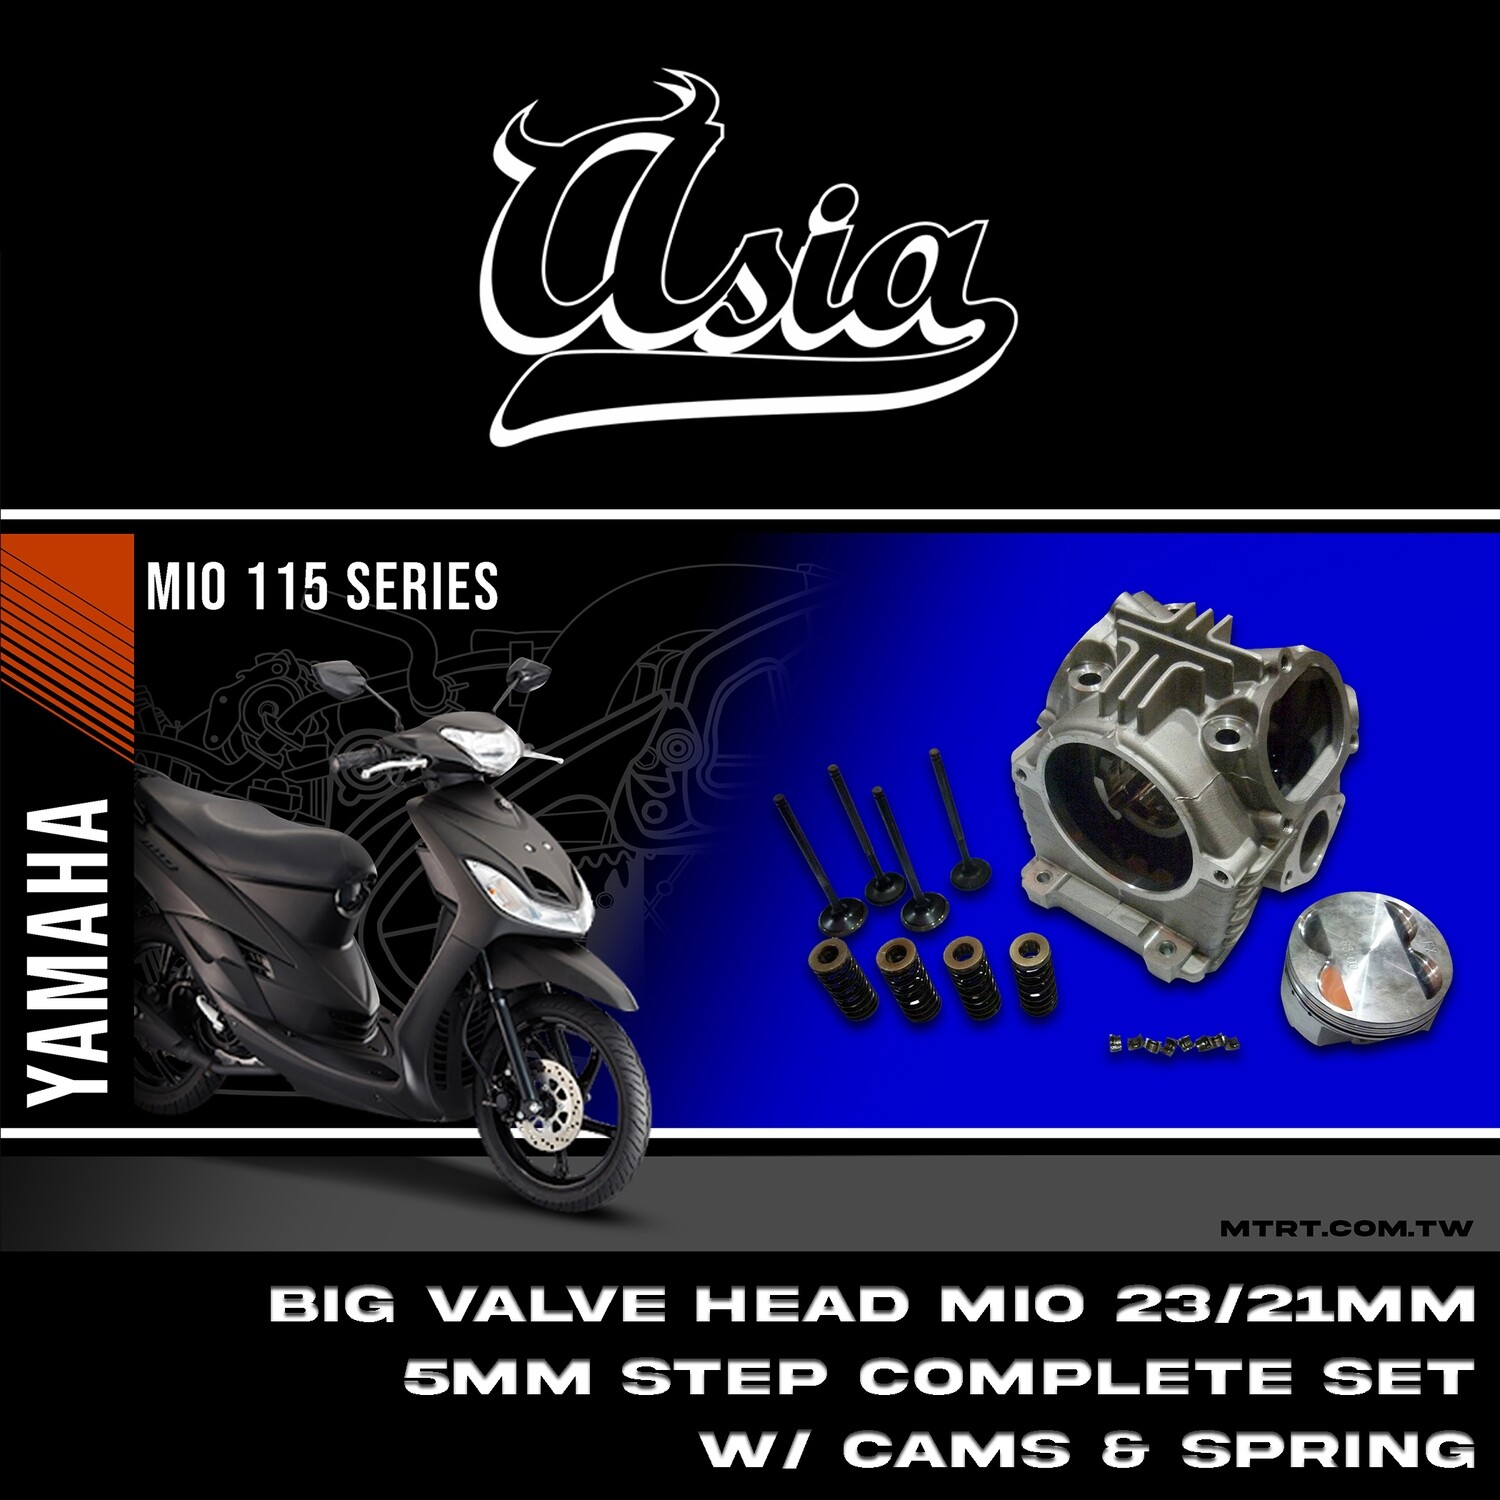 BIG VALVE HEAD MIO 23/21MM 5mm stem complete set w cams @ spring